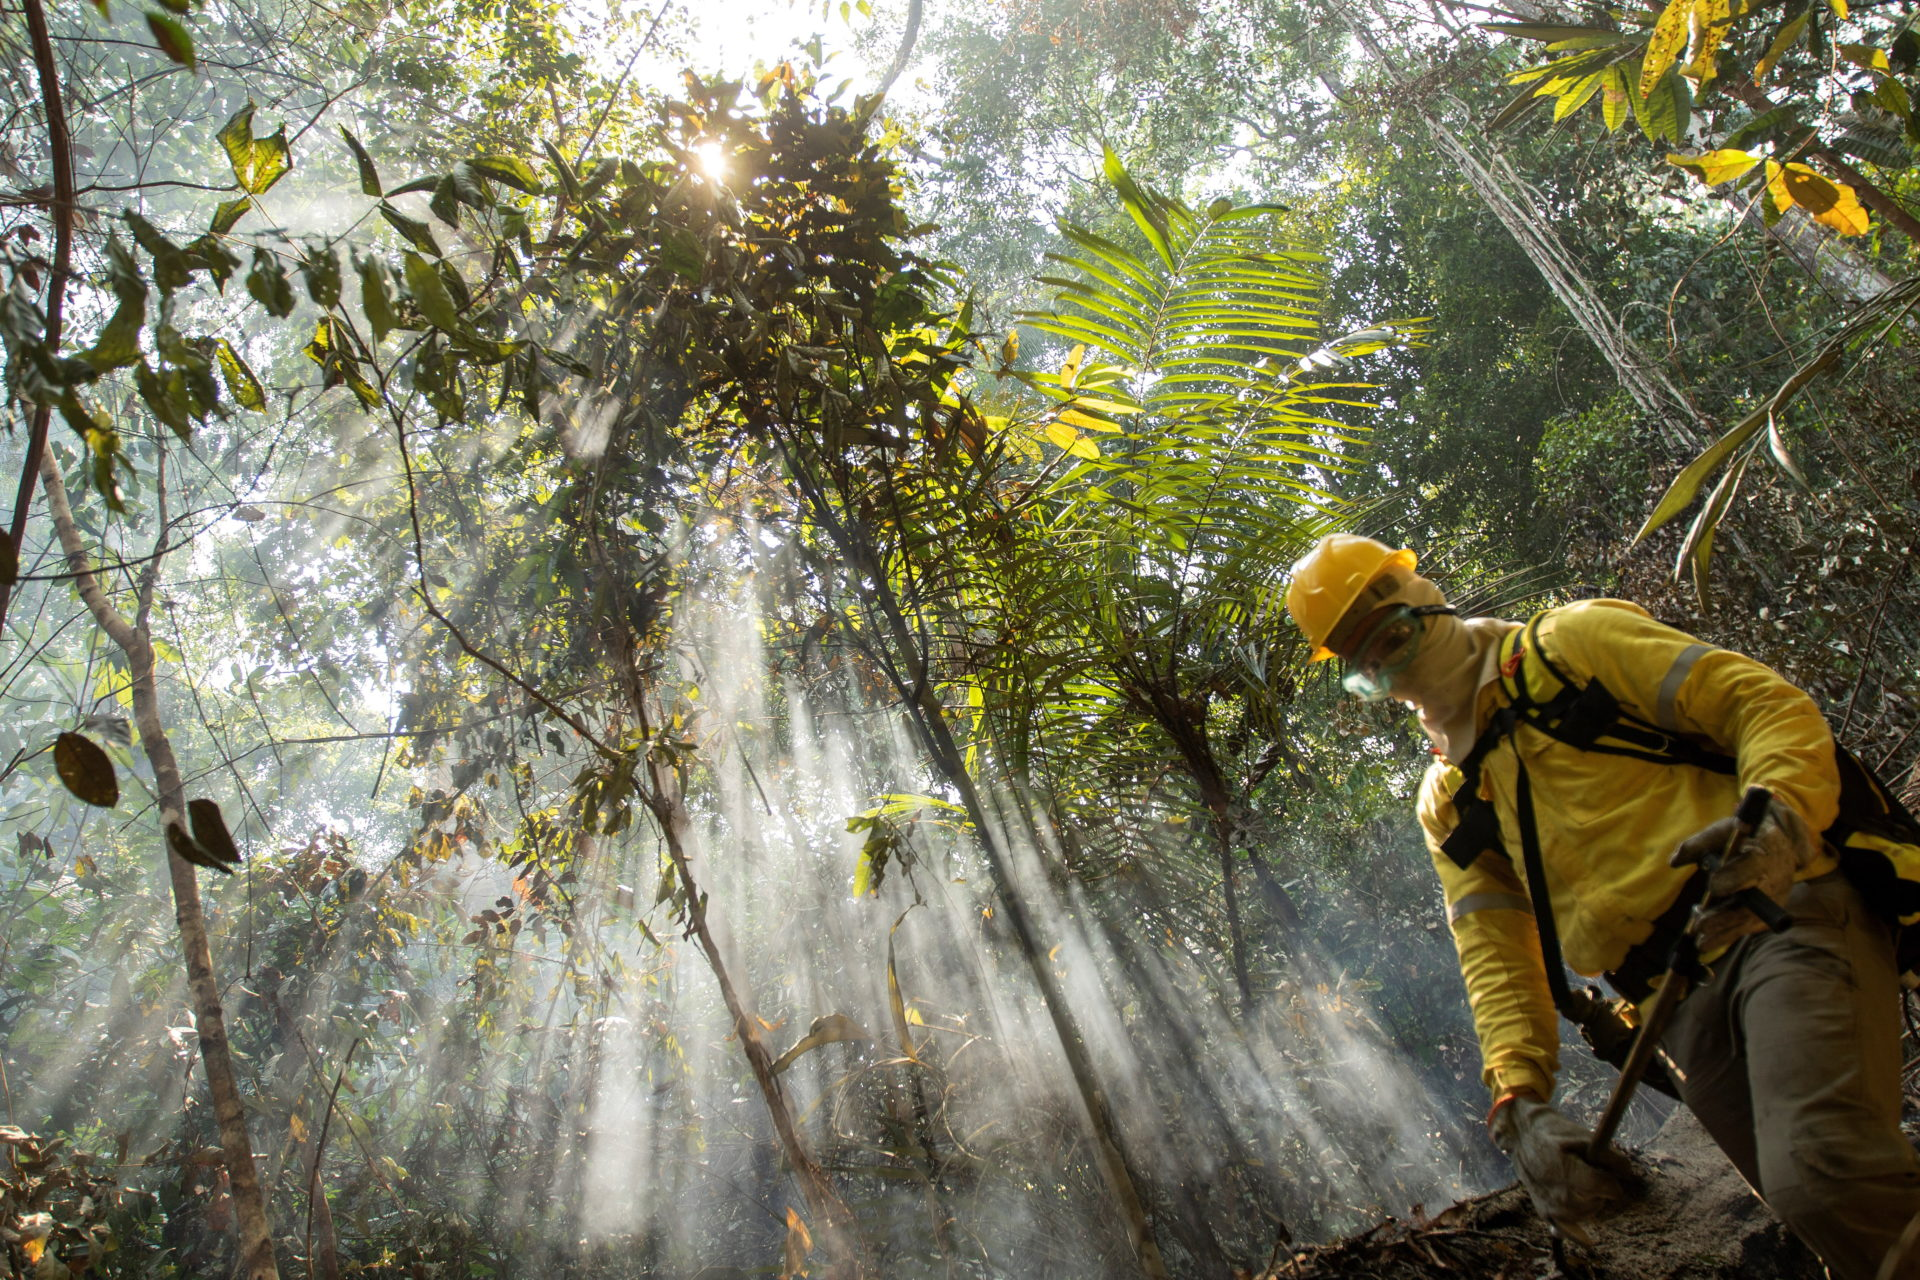 epa07799814 A fireman work to extinguish a fire at a forest near Porto Velho, Brazil, 28 August 2019. Brazil Amazon region suffer the worst fires of the last years. The government of Brazil has deployed some 40 thousand military personnel in the Amazon region.  EPA/Joedson Alves